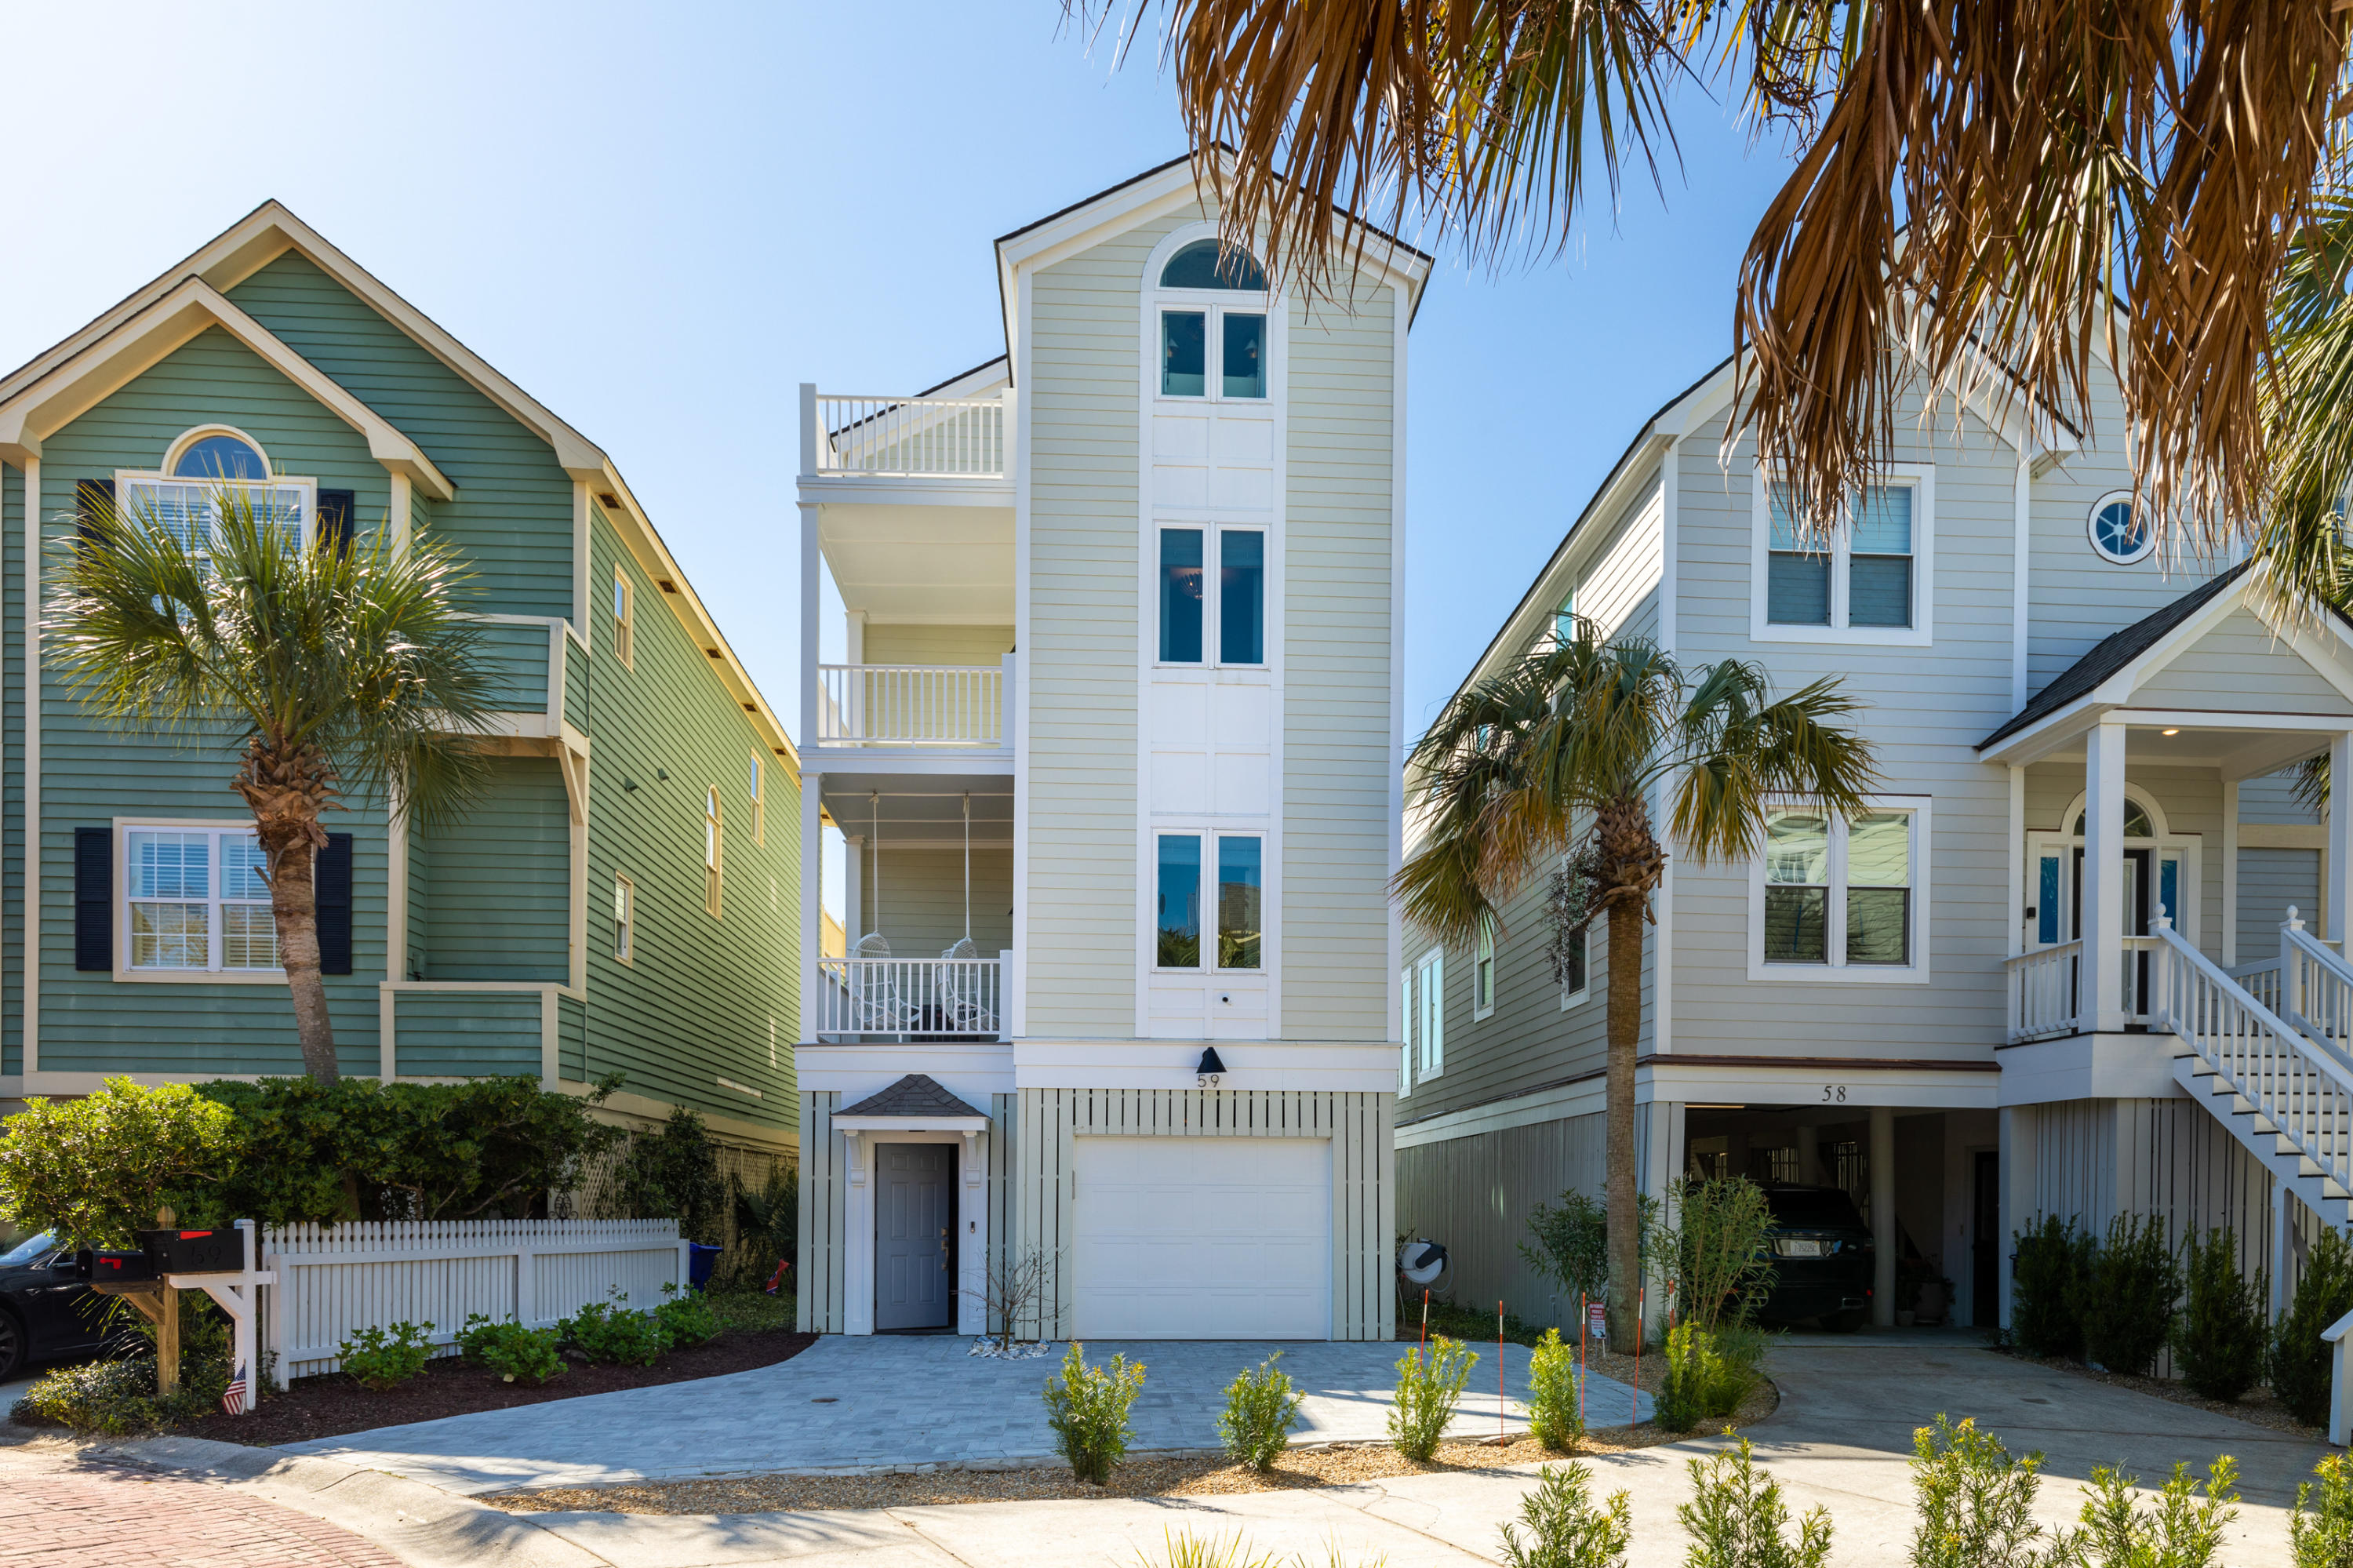 Wild Dunes Homes For Sale - 59 Grand Pavilion, Isle of Palms, SC - 33